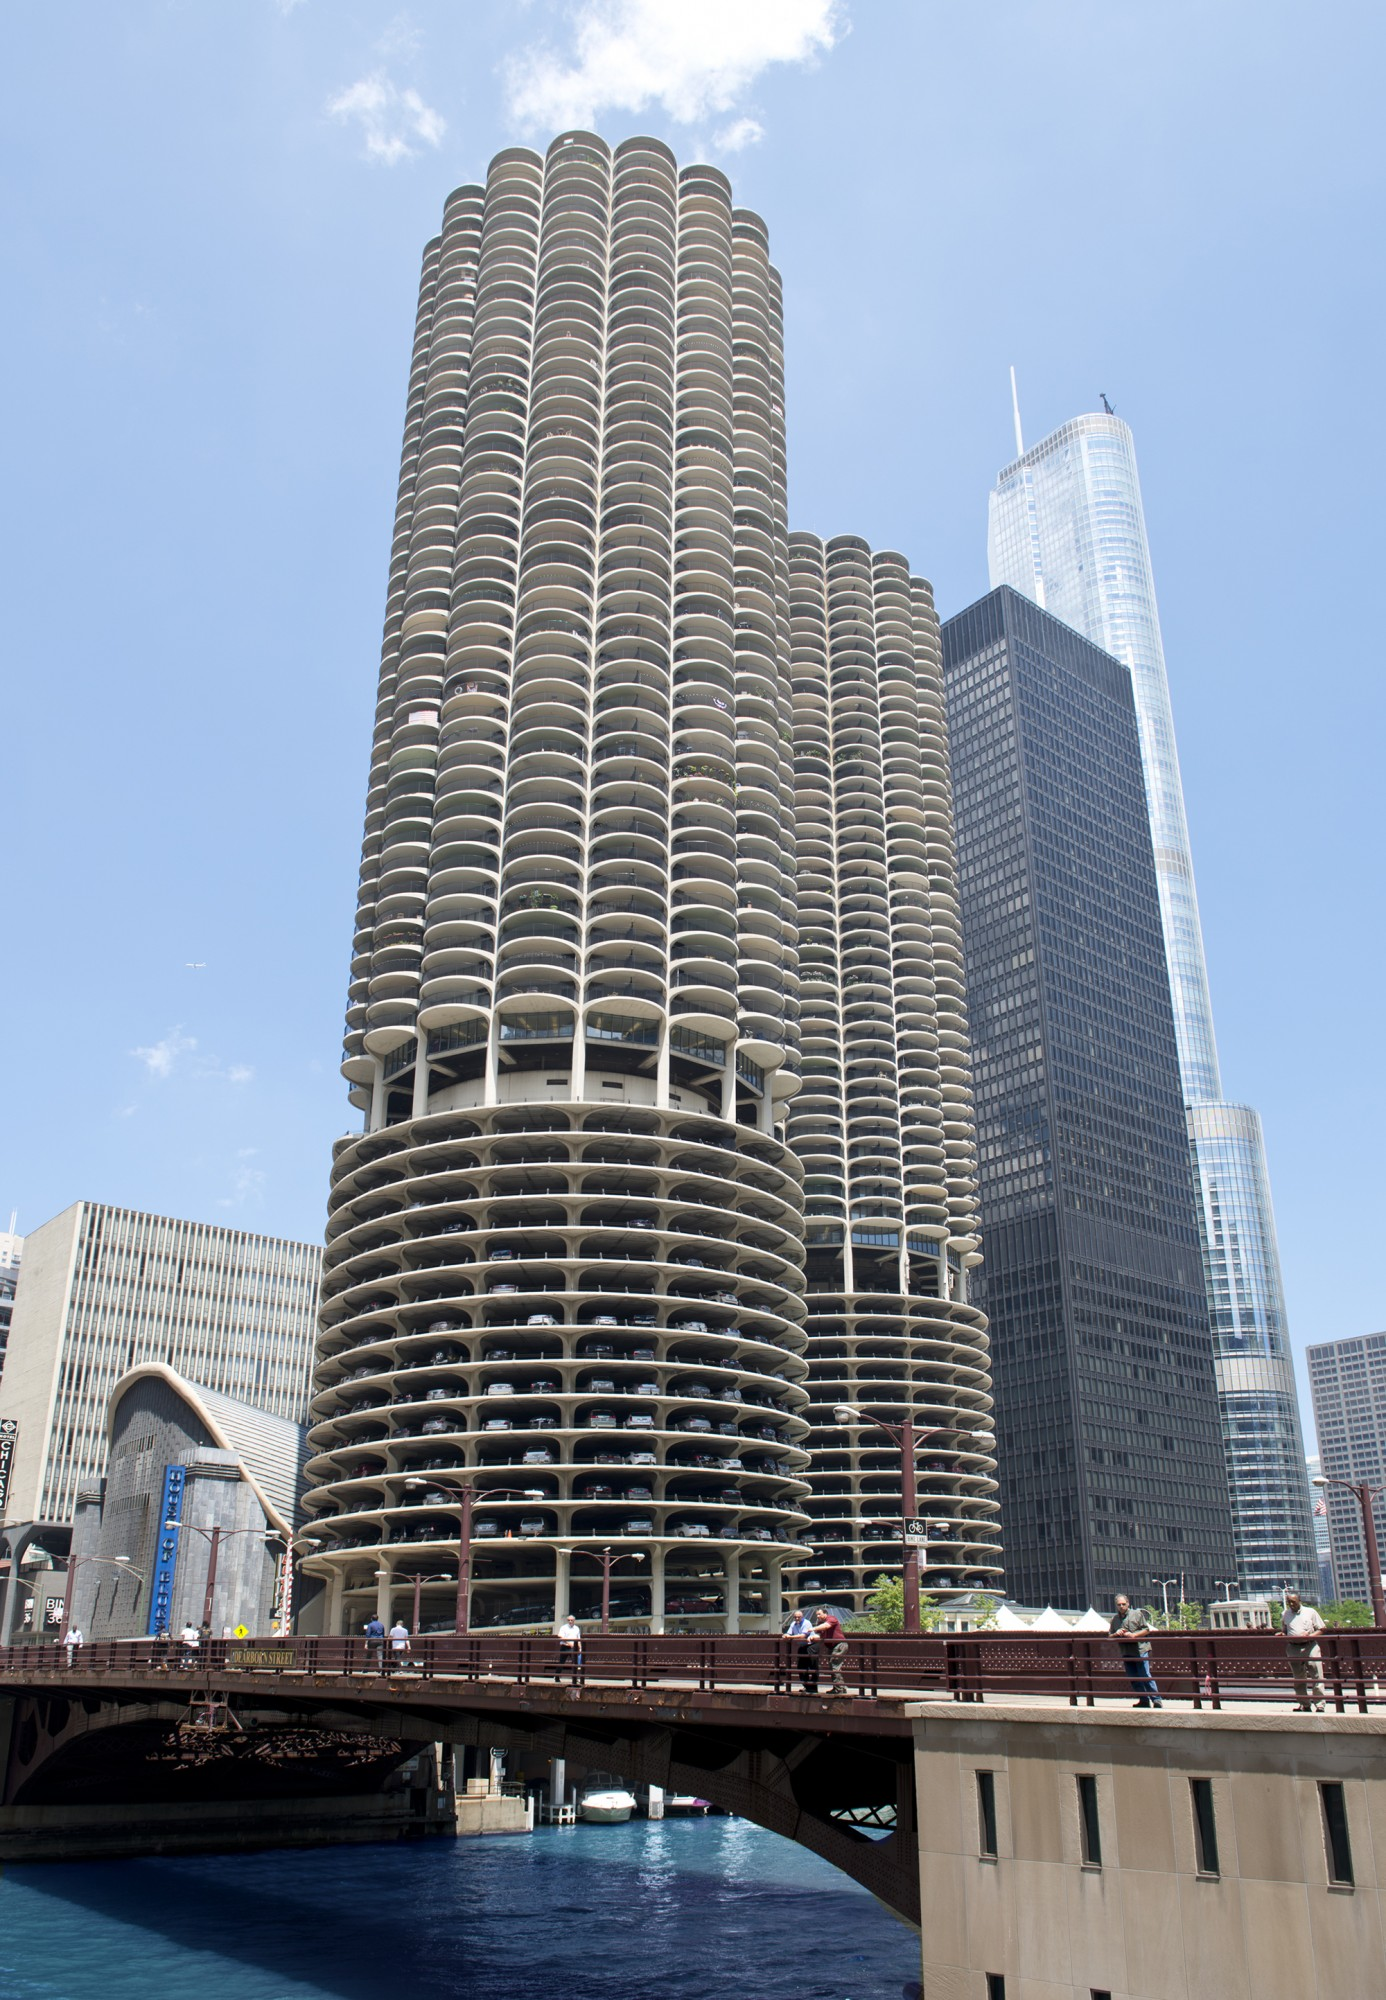 Marina City · Buildings of Chicago · Chicago Architecture Center - CAC